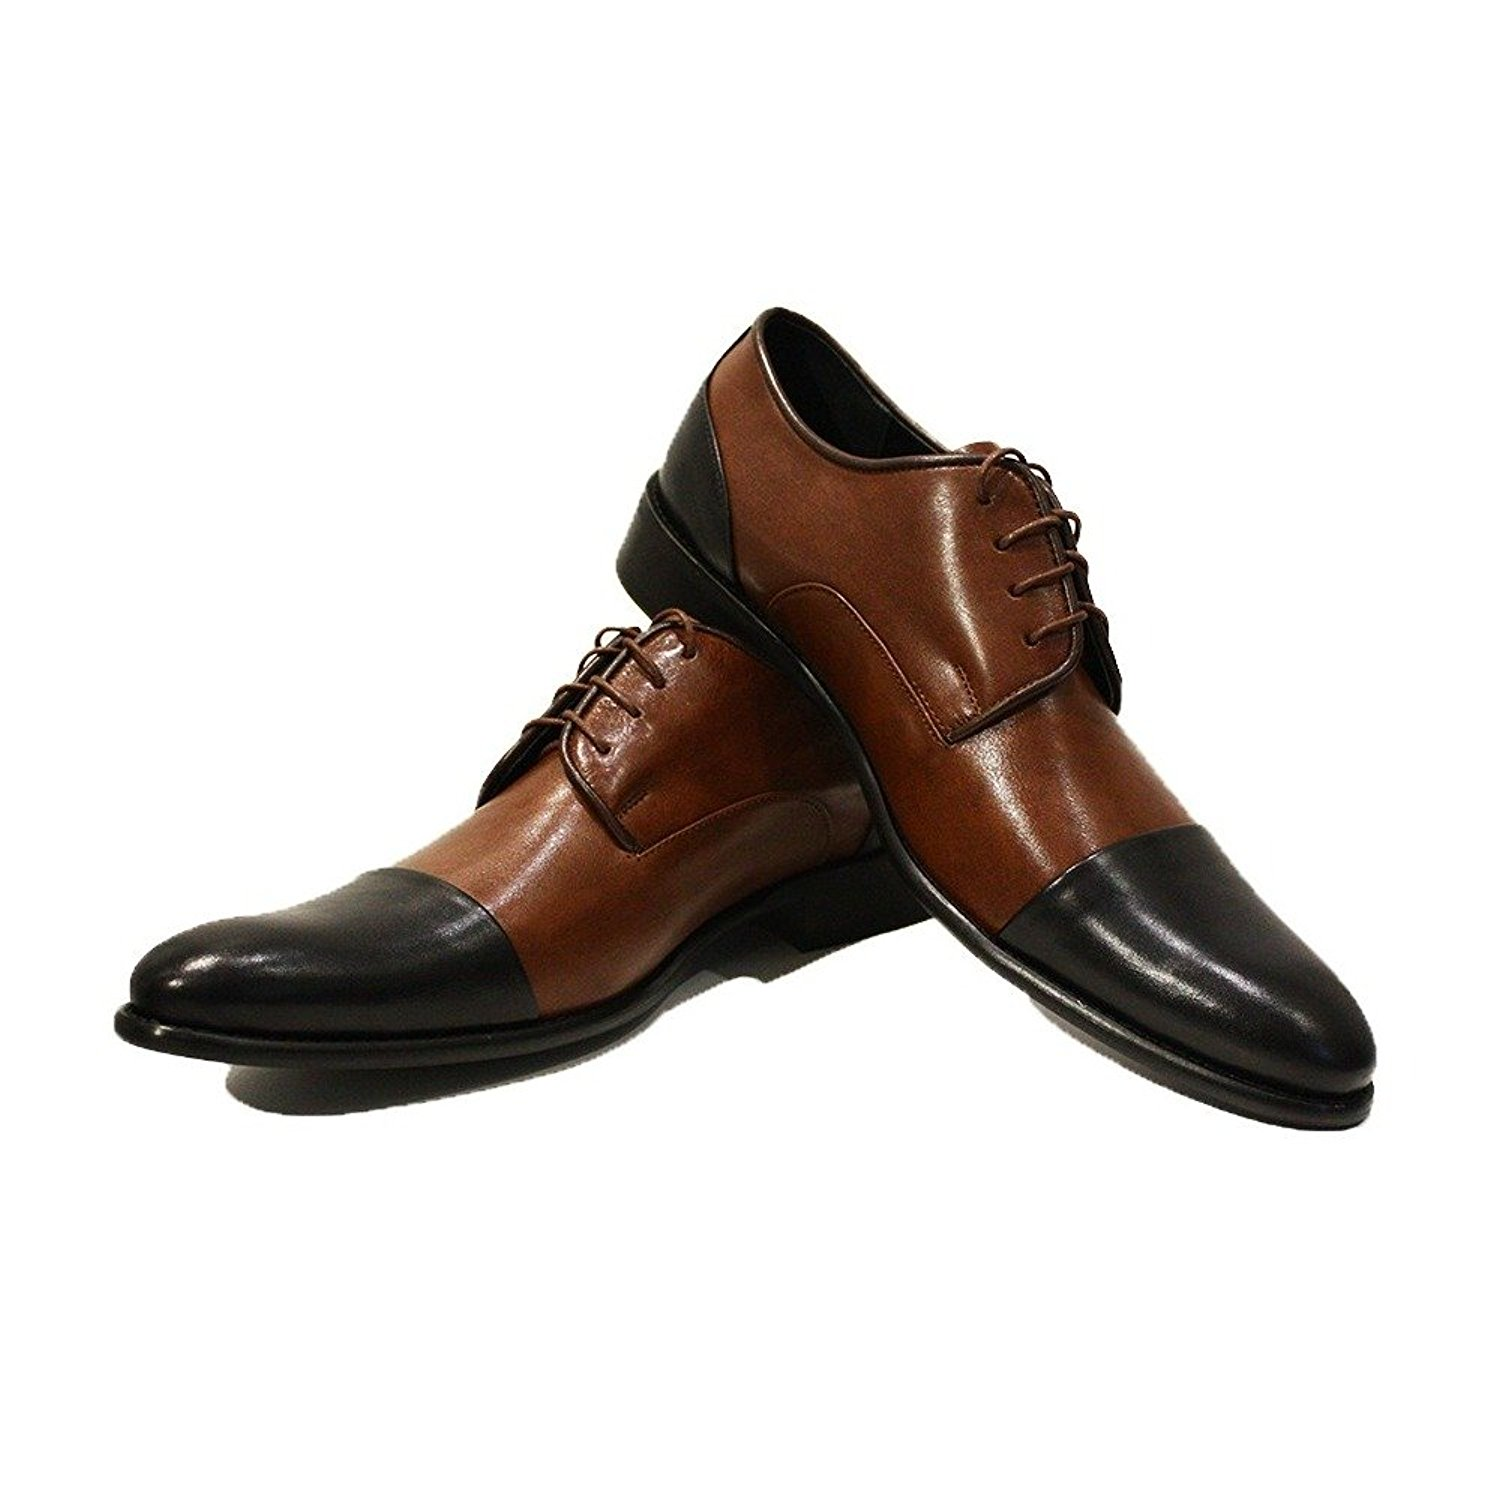 Modello Graziano - Handmade Italian Mens Brown Oxfords Dress Shoes - Cowhide Smooth Leather - Lace-up